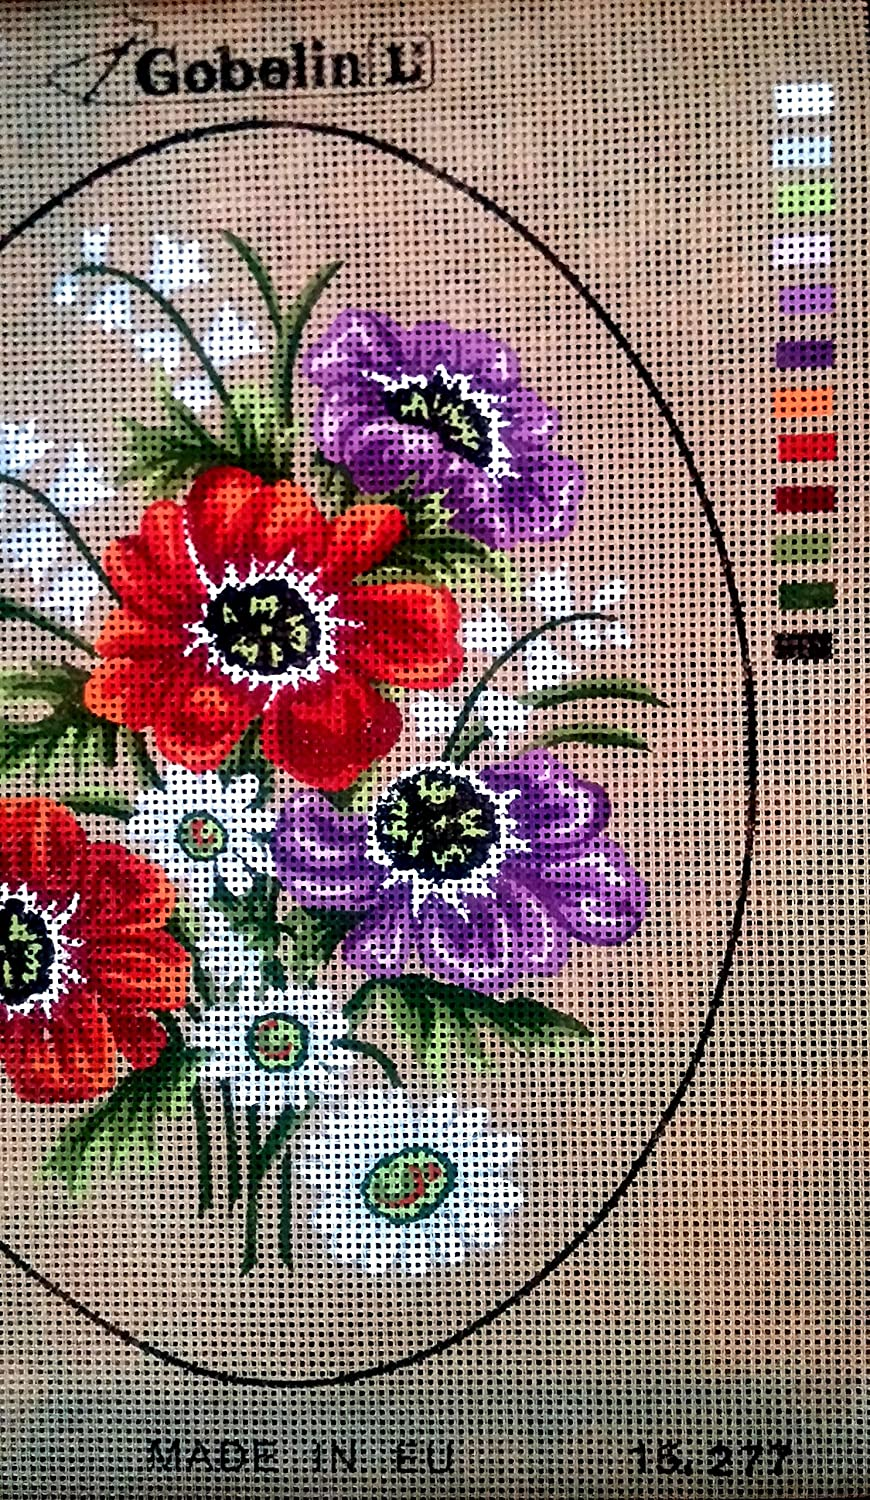 OVAL ASSORTED FLOWERS NEEDLEPOINT CANVAS ONLY